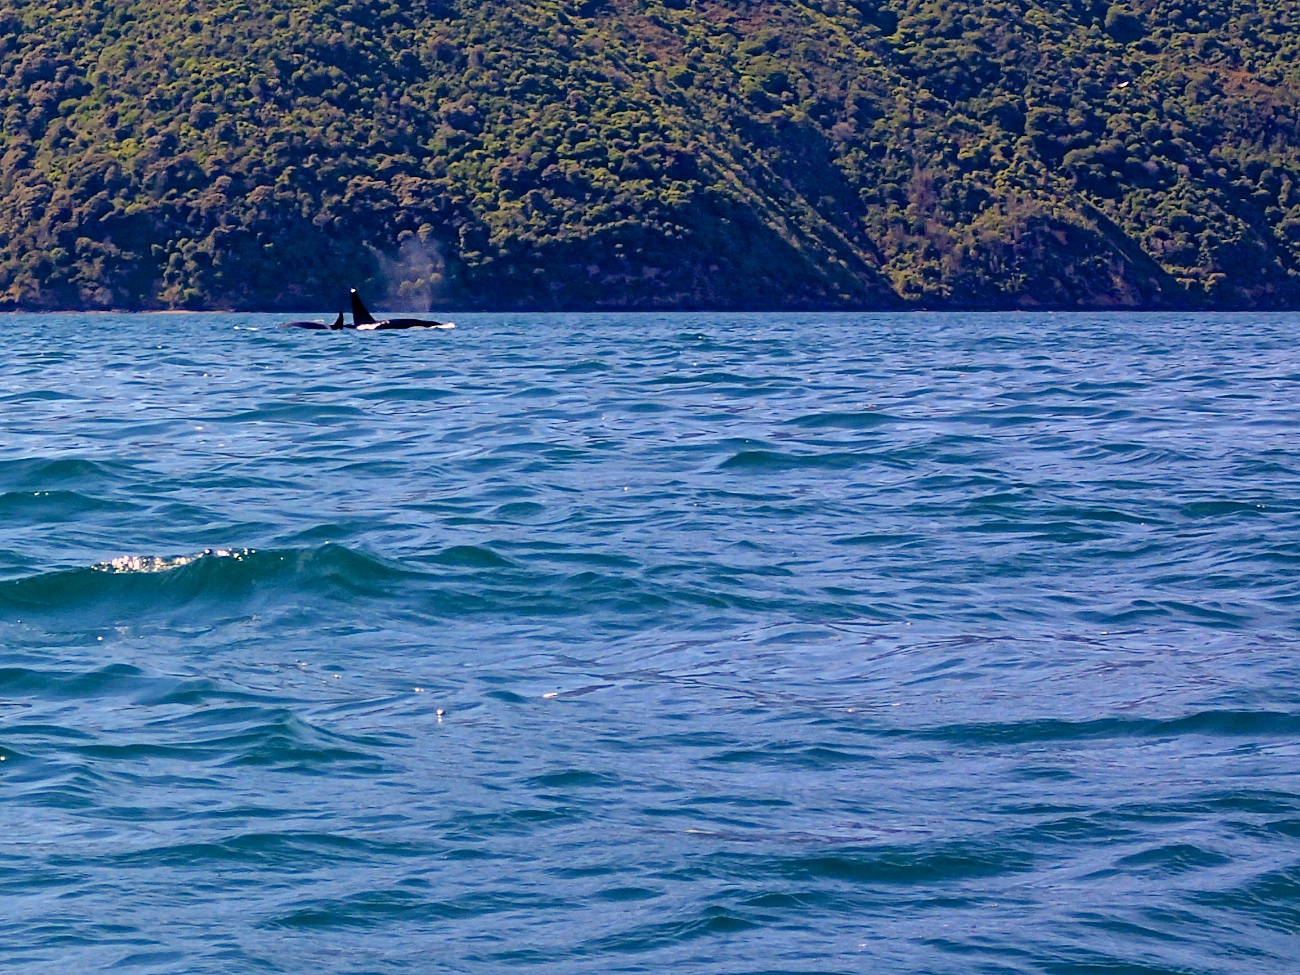 Kayaking with Orcas in Queen Charlotte Sound